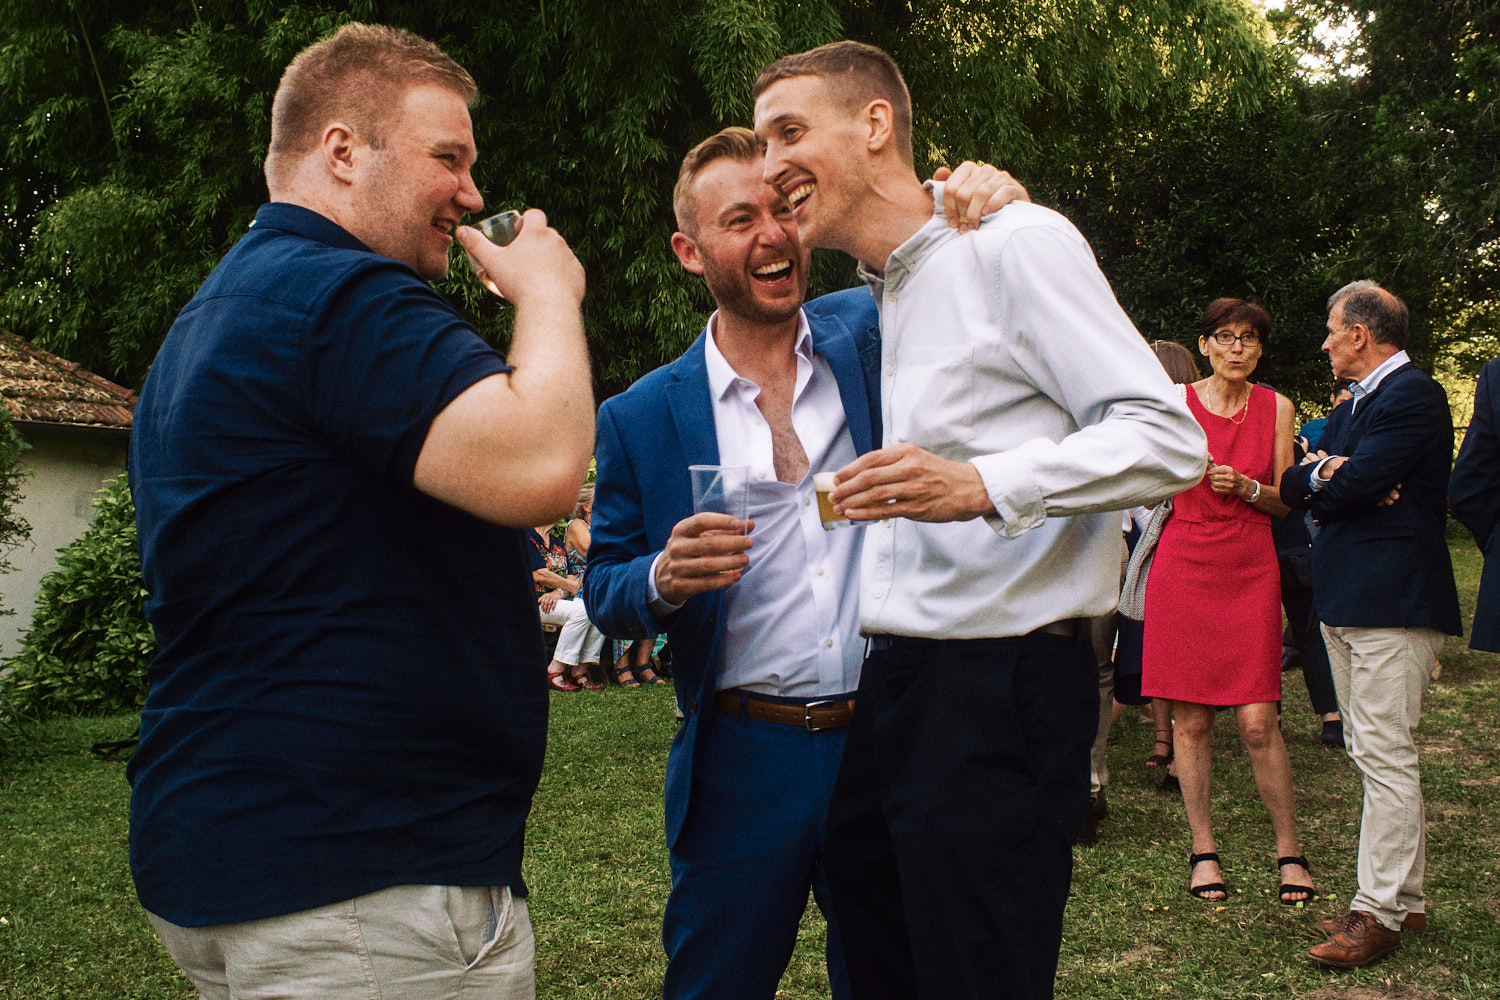 Wedding guests laugh and hug each other in a garden